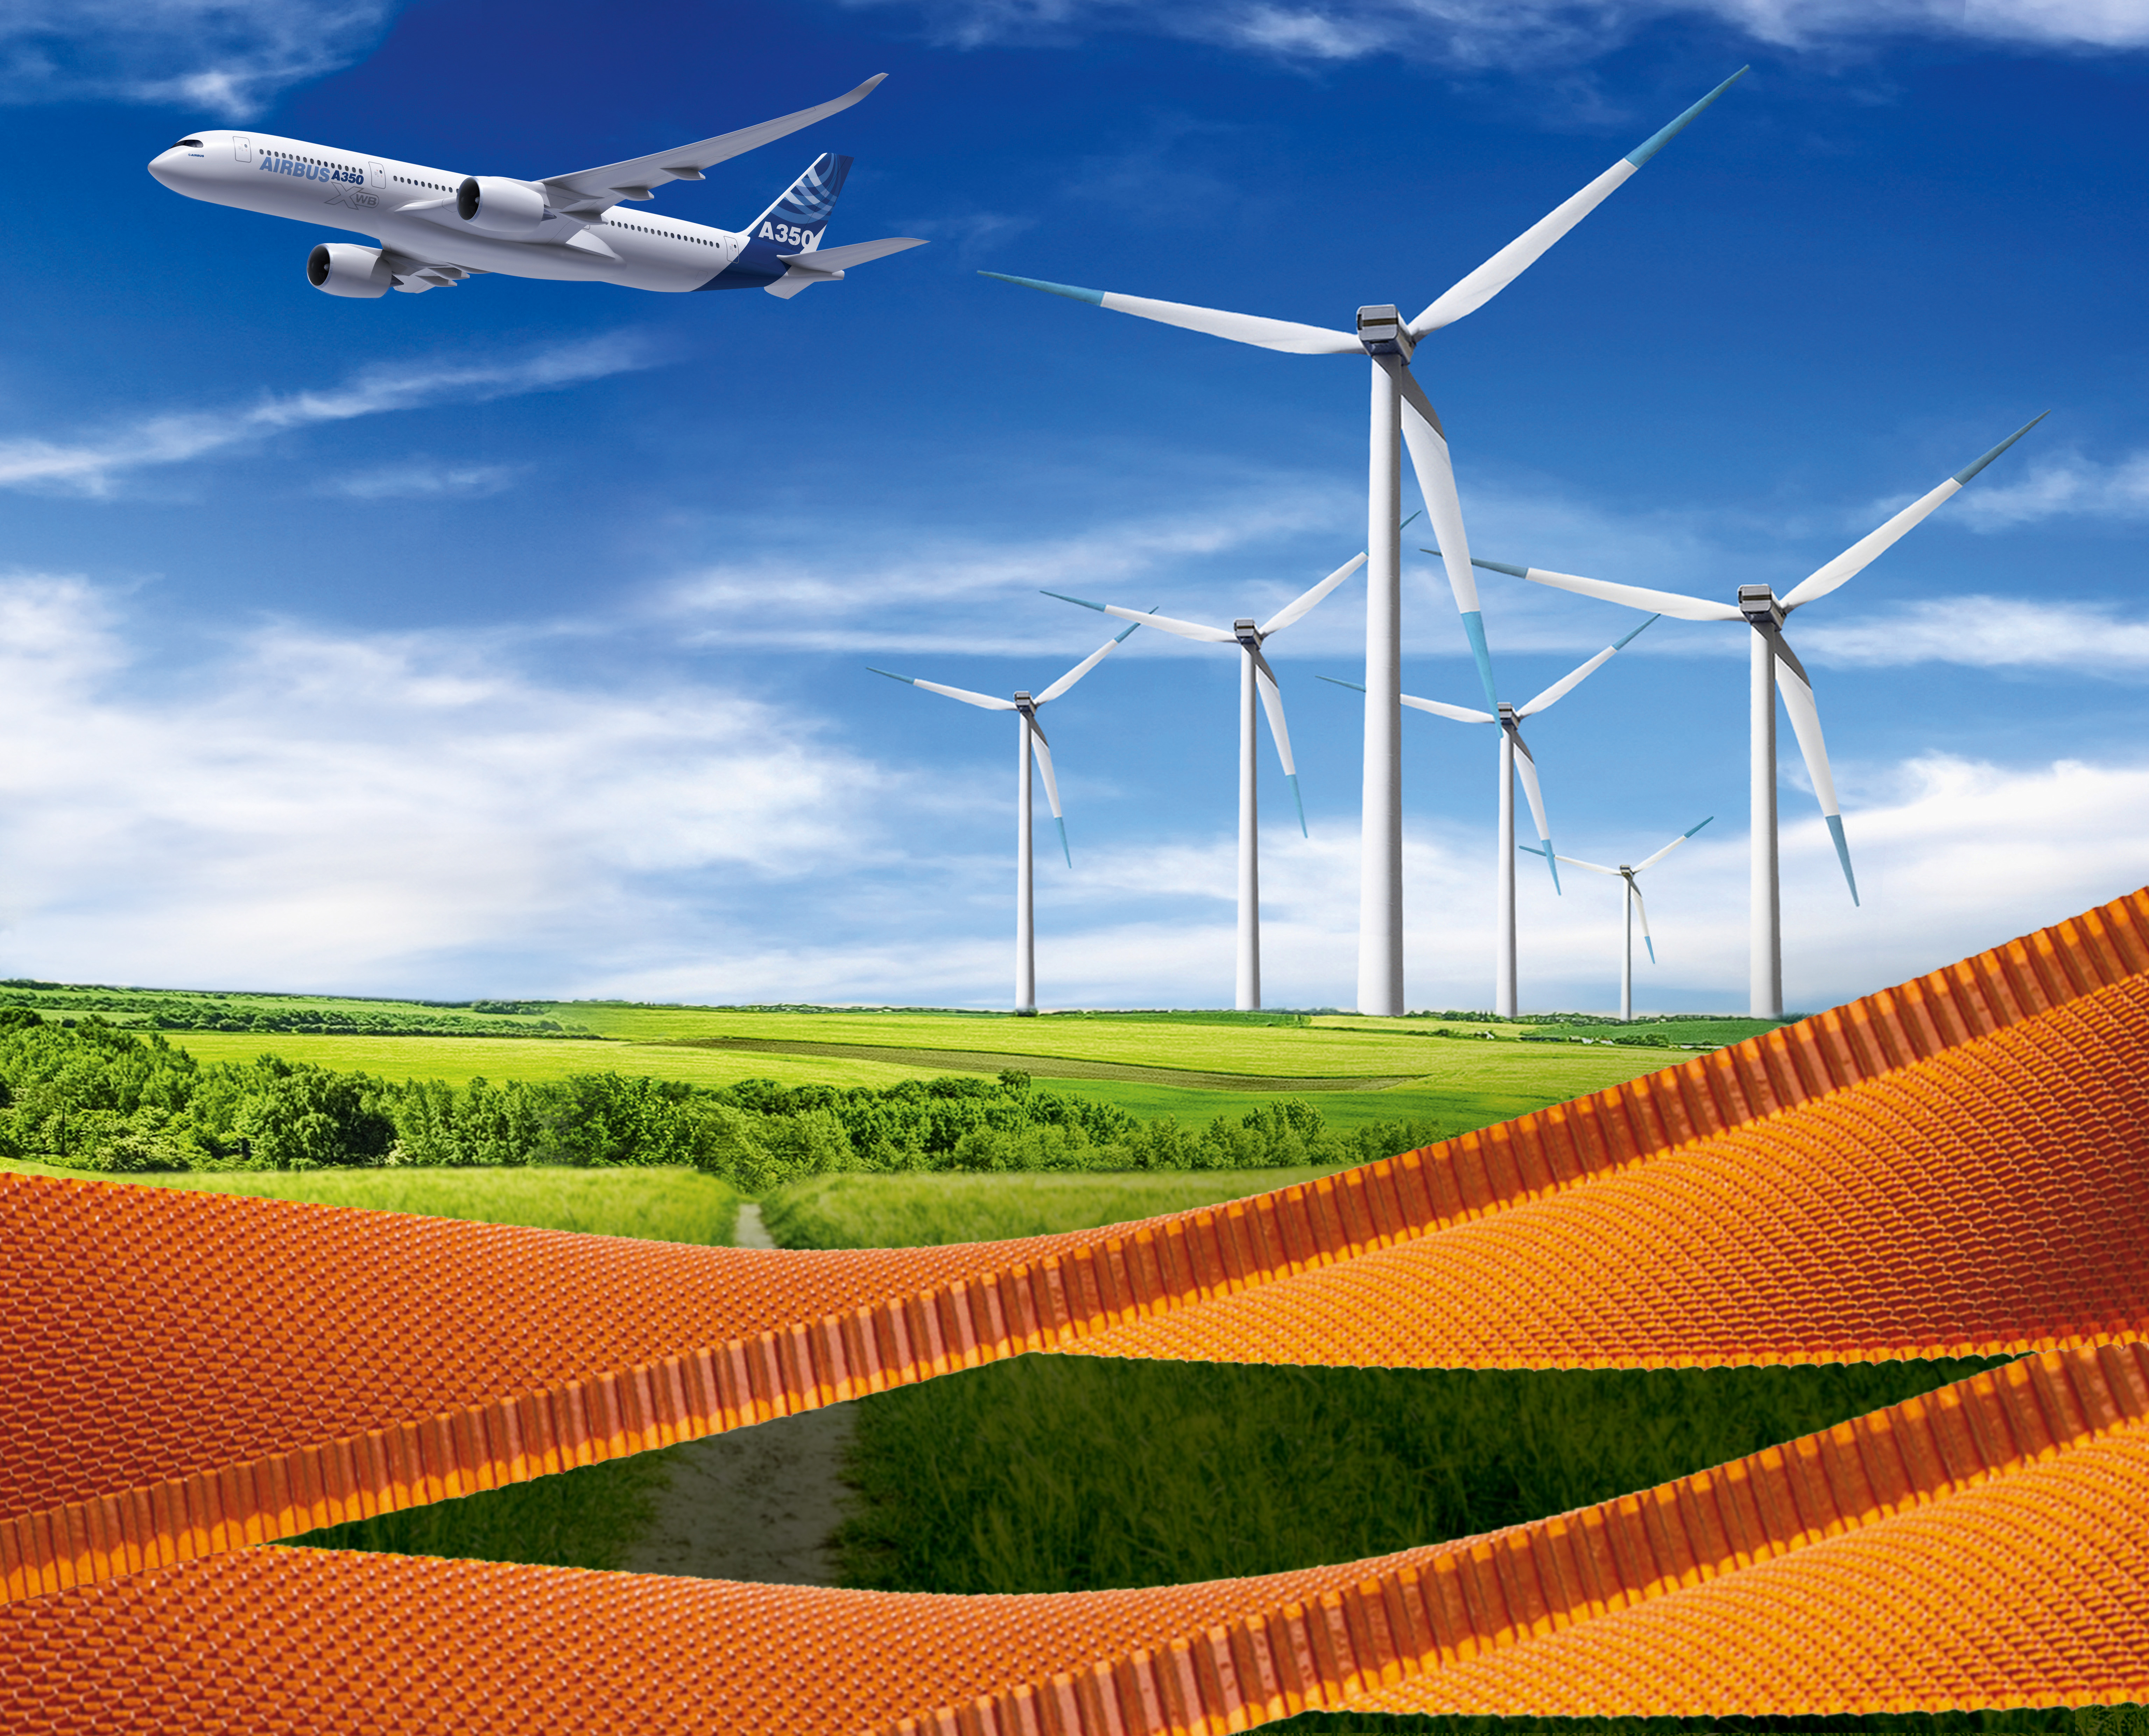 composites-windpower-image.jpg